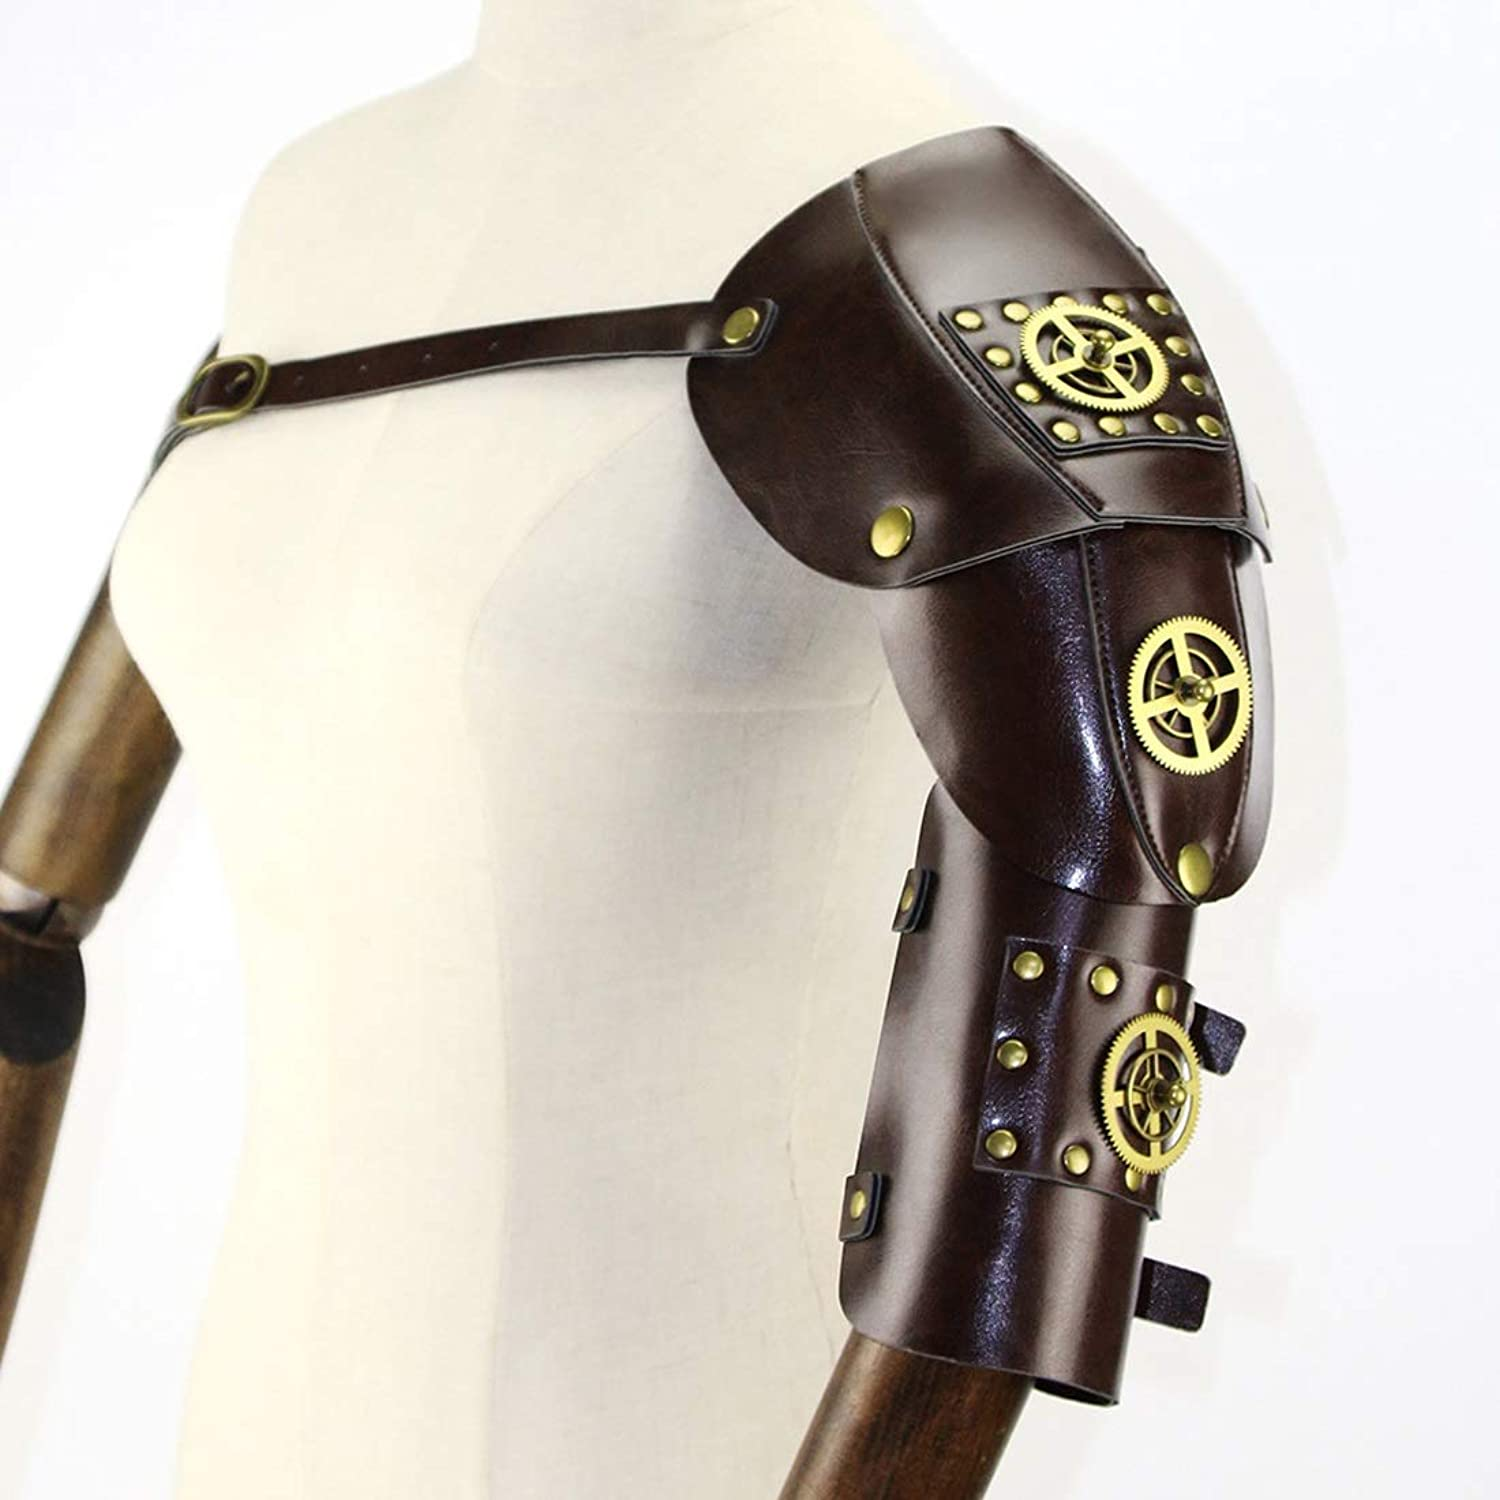 Santonliso Gothic Steampunk Adjustable Arm Strap Body Chest Harness Shoulder Armors Cosplay Metal Rivets Accessory Decor Beefy and Aggressive Look Club Wear Costumes (color   Brown)